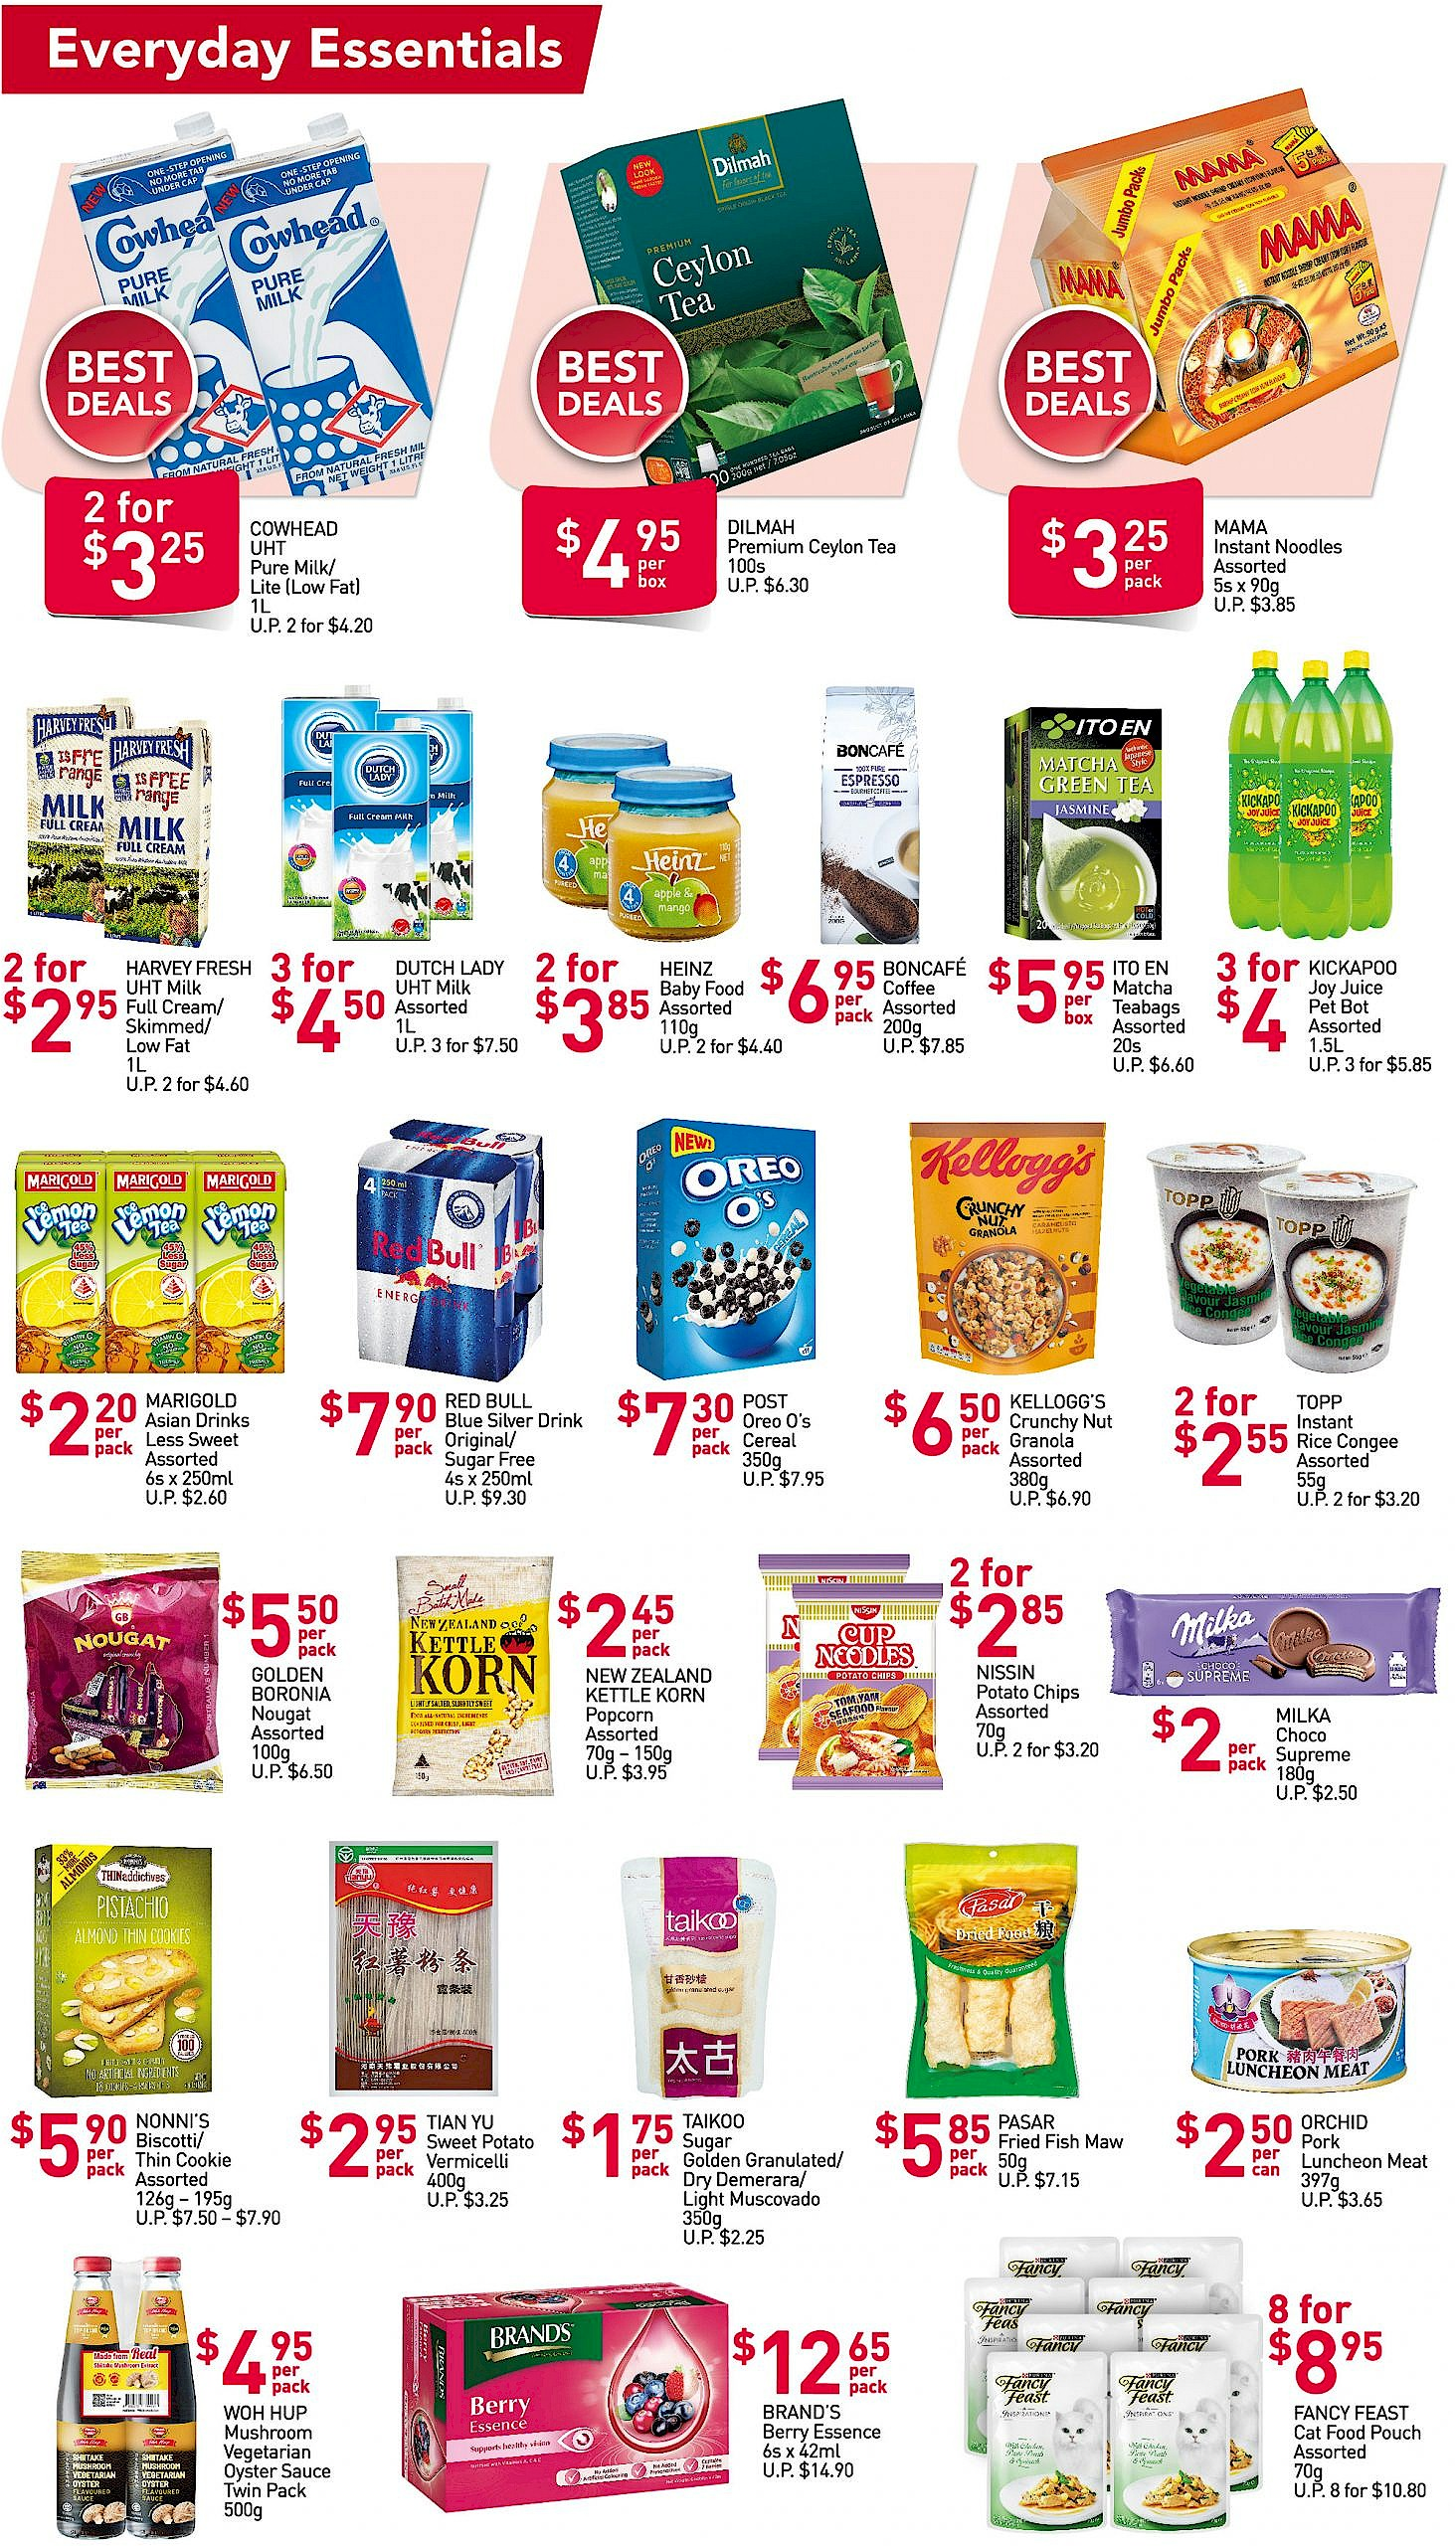 all-singapore-deals-fairprice-weekly-saver-1